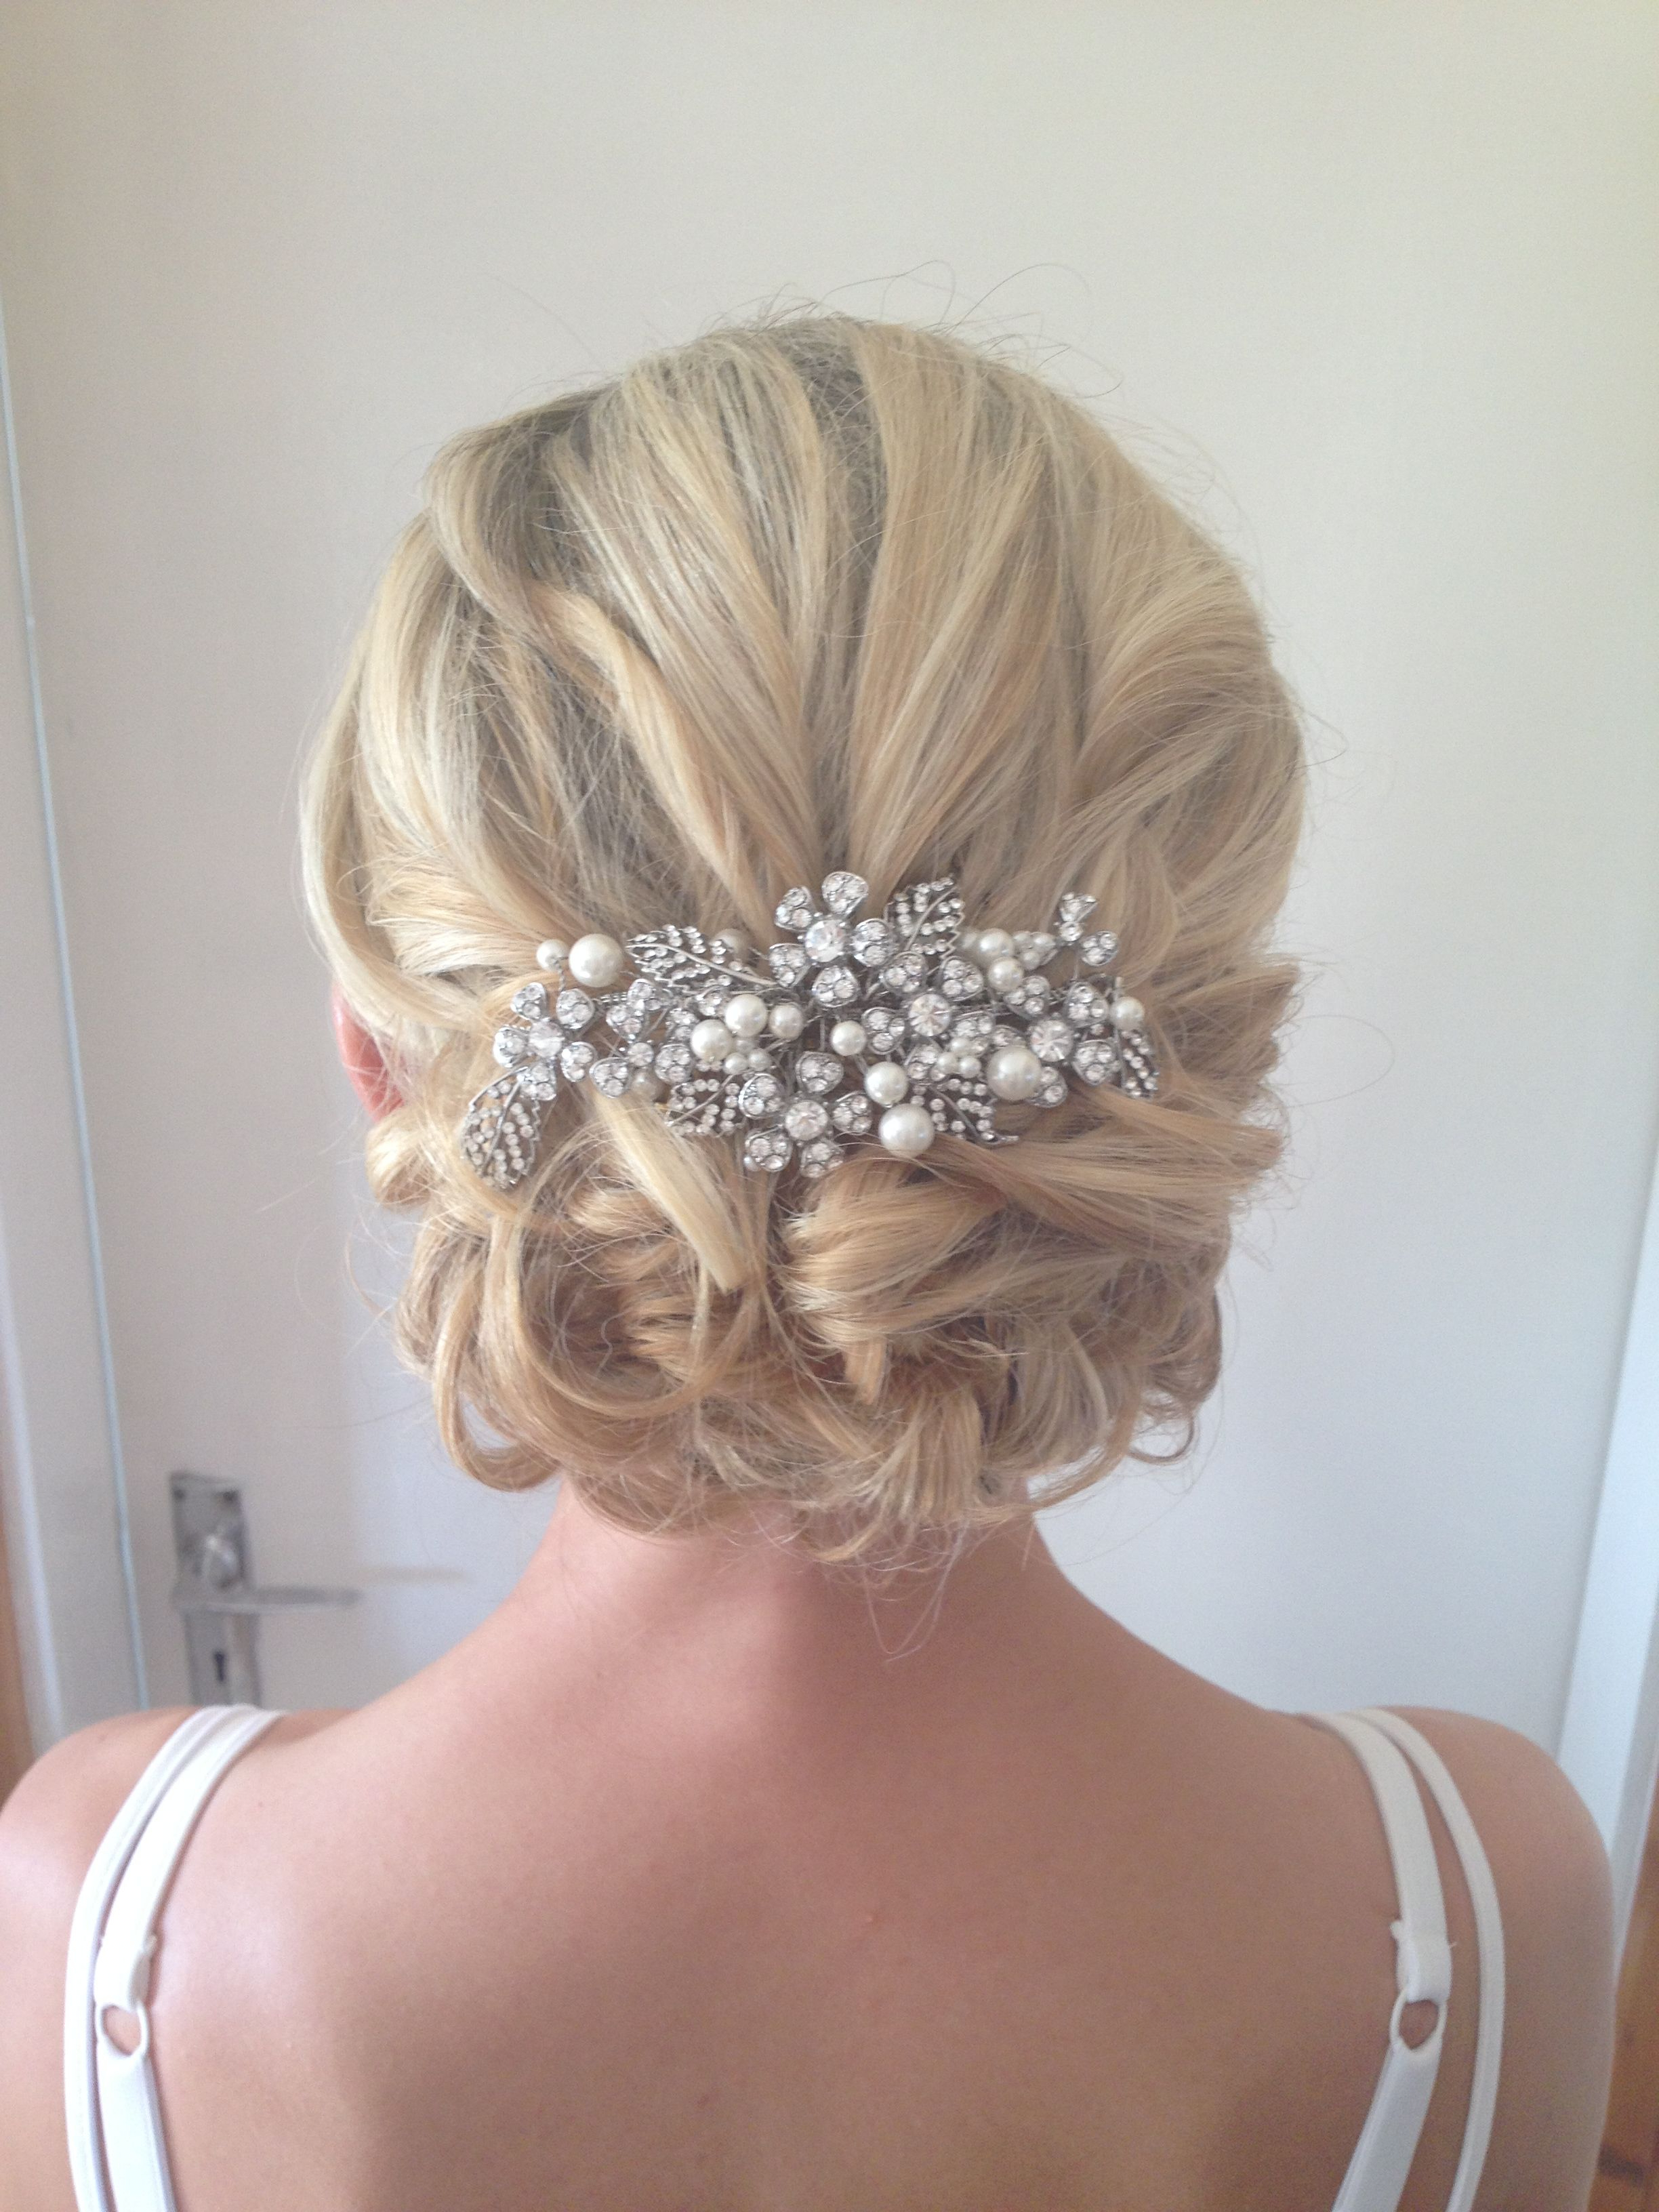 Favorite Pulled Back Half Updo Bridal Hairstyles With Comb For Wedding Hairstyles In (View 6 of 20)